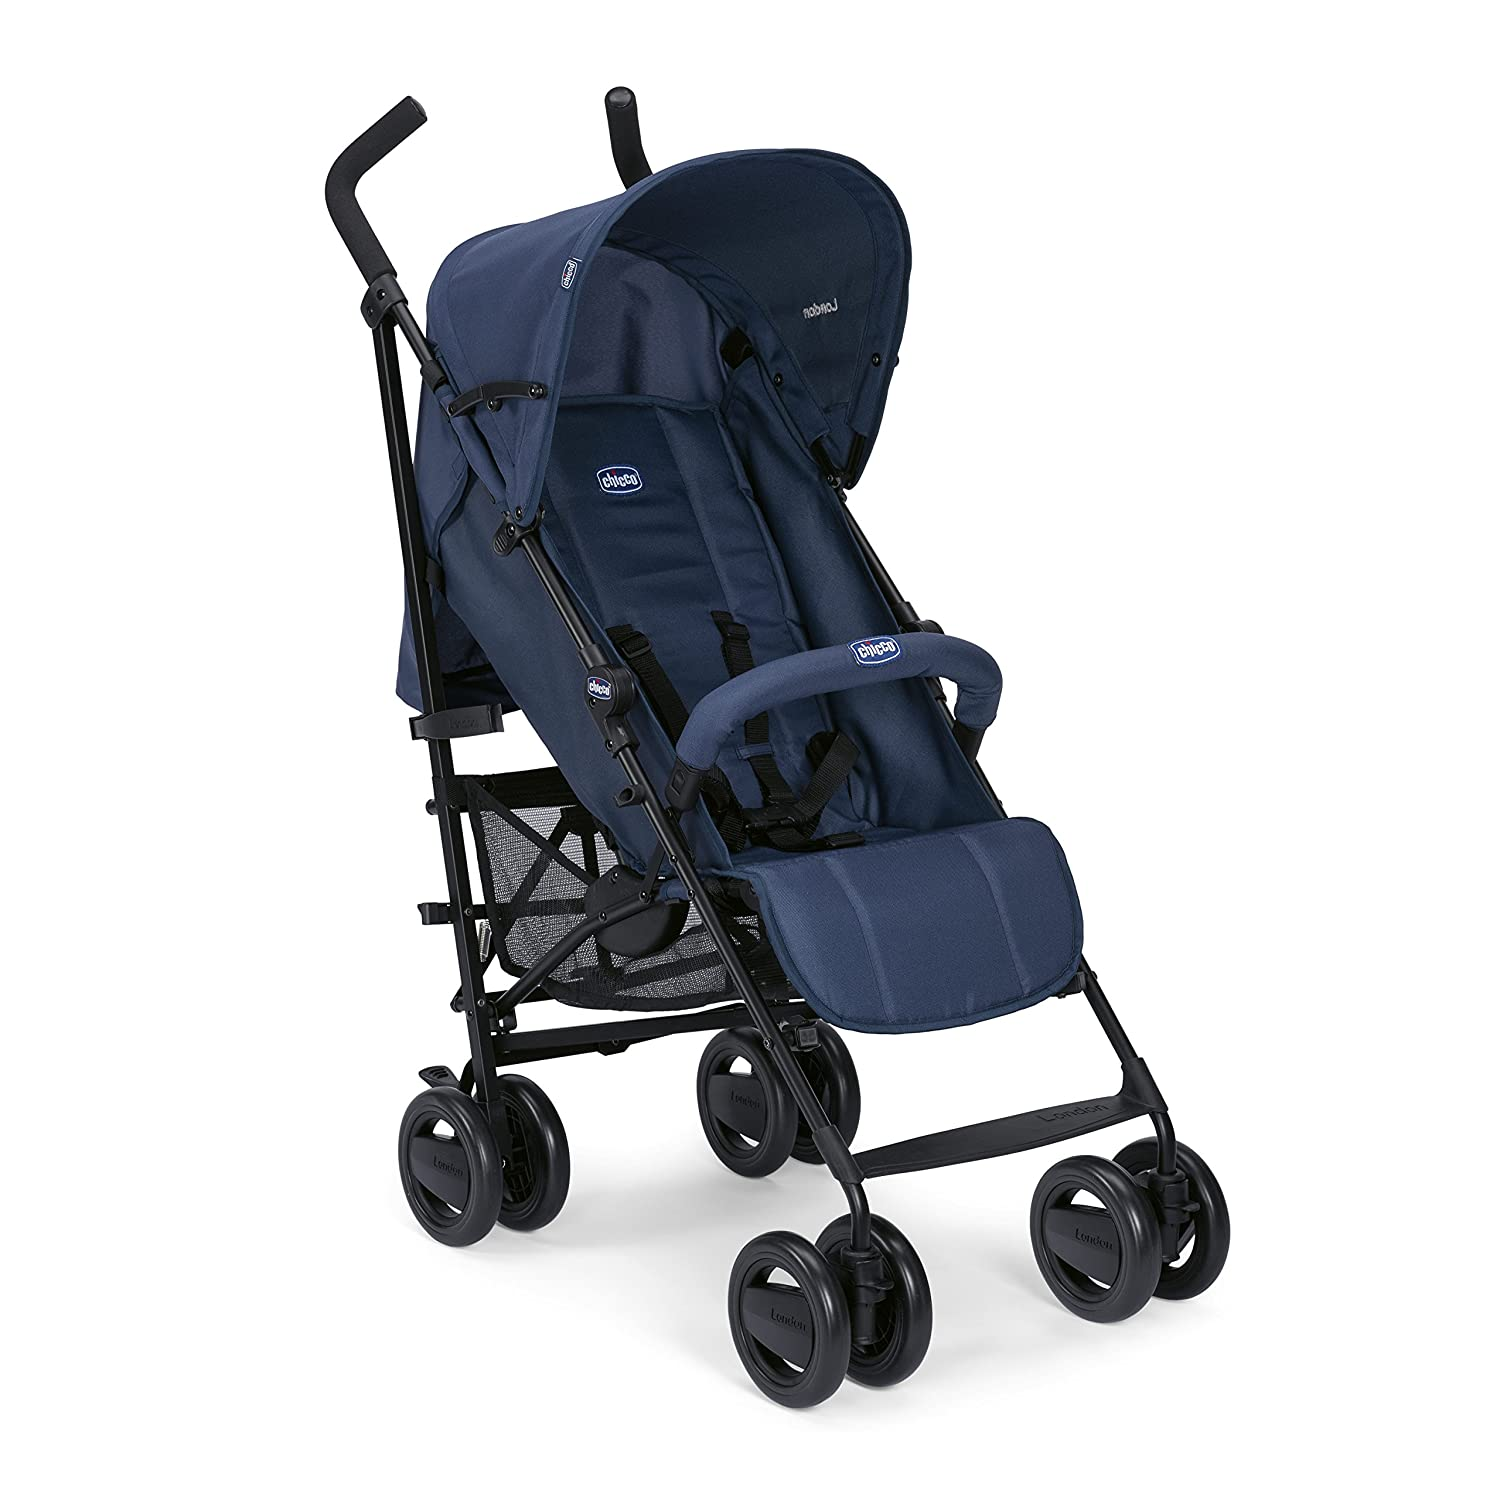 Chicco London Up Buggy, Blue Passion Artsana Germany GmbH 00079258640000